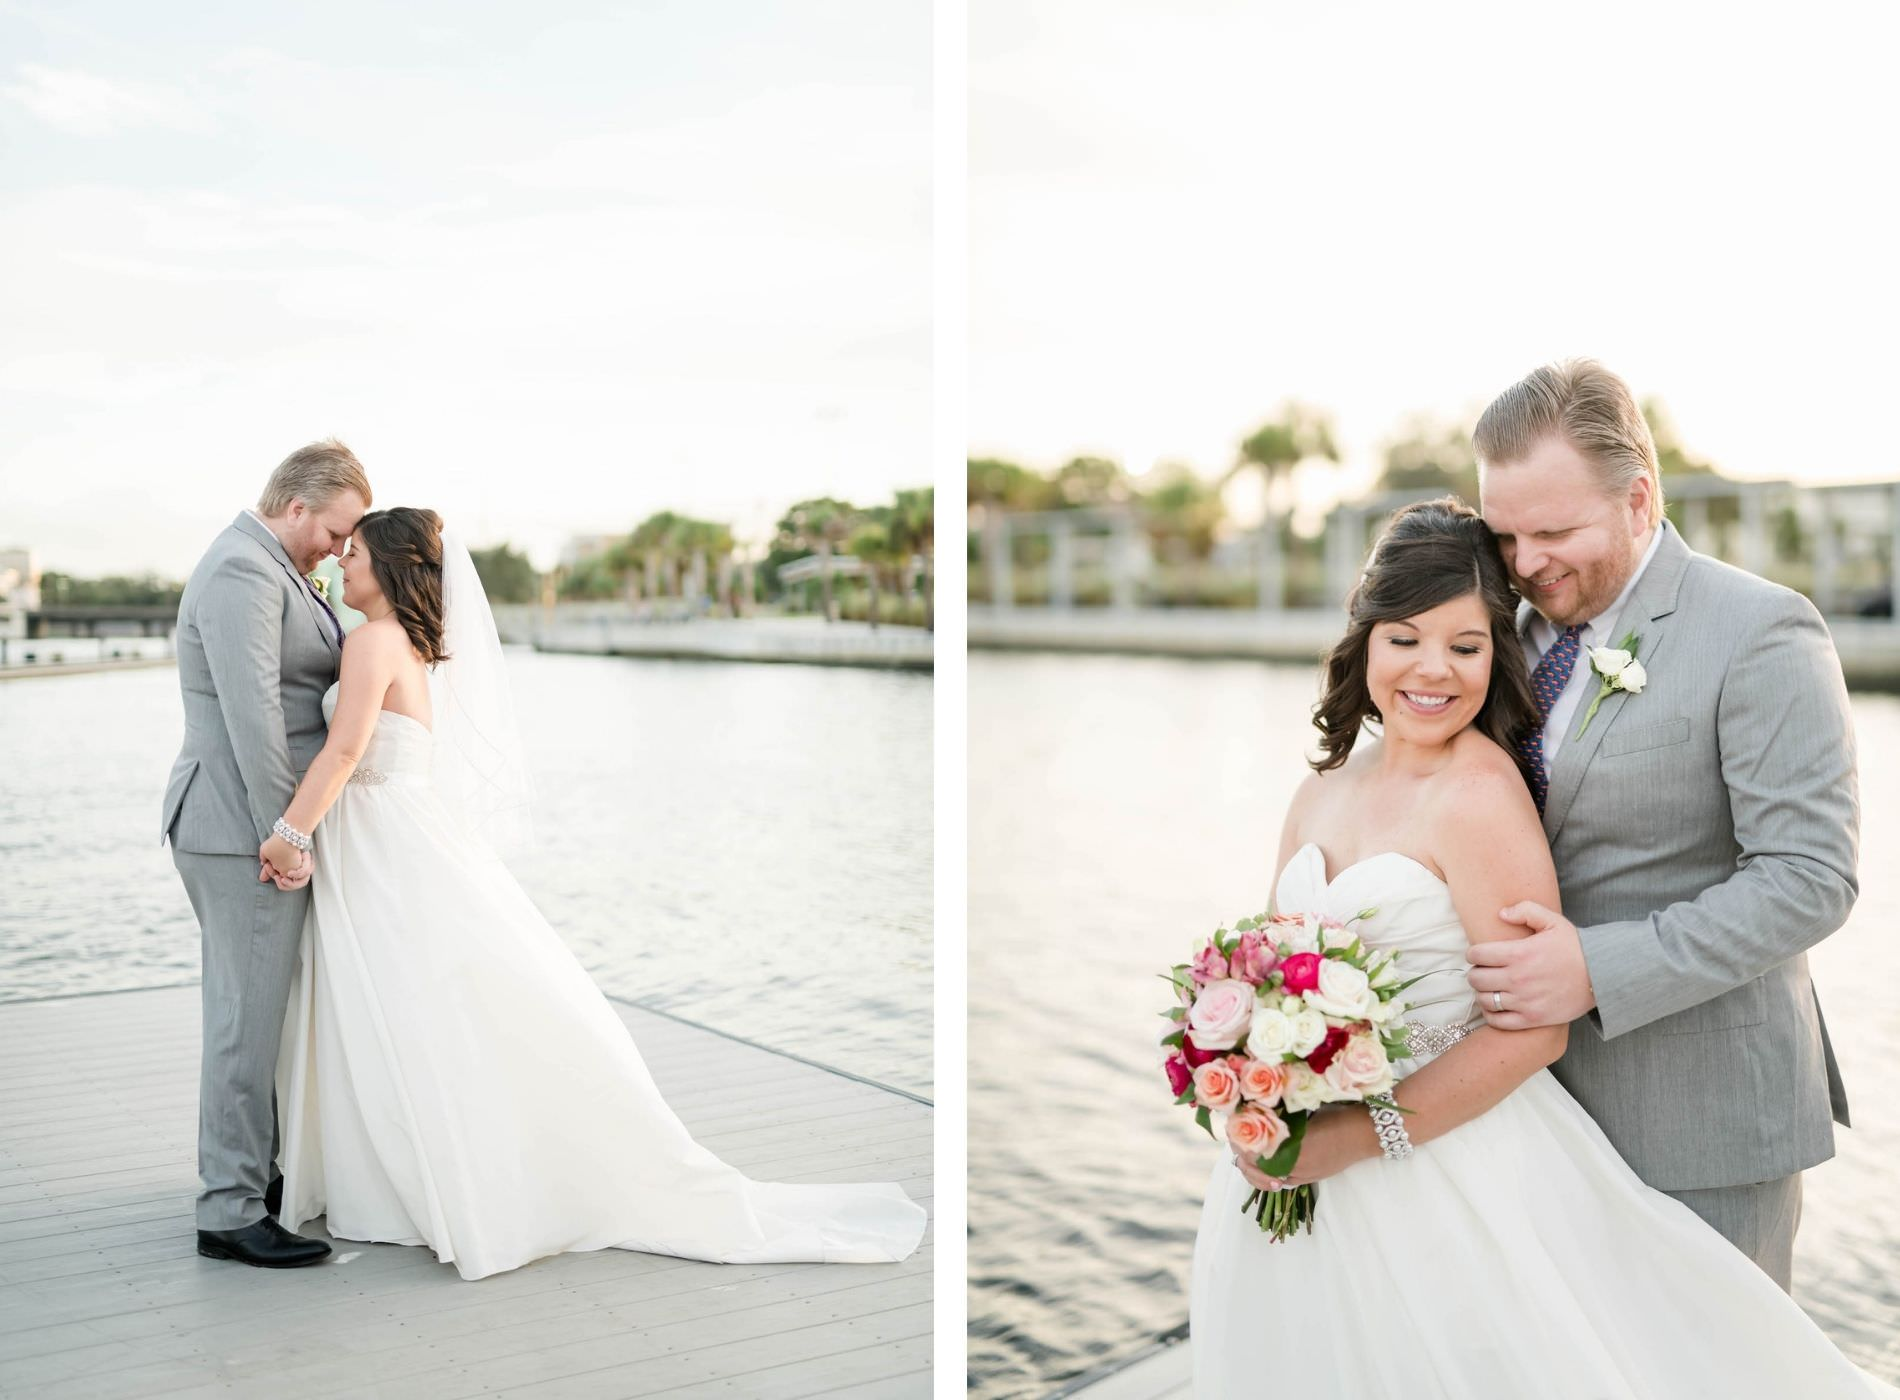 Florida Bride in Strapless A-Line Wedding Dress Holding Pink, White Roses Floral Bouquet and Groom Waterfront Photo | Tampa Bay Wedding Hair and Makeup Adore Bridal